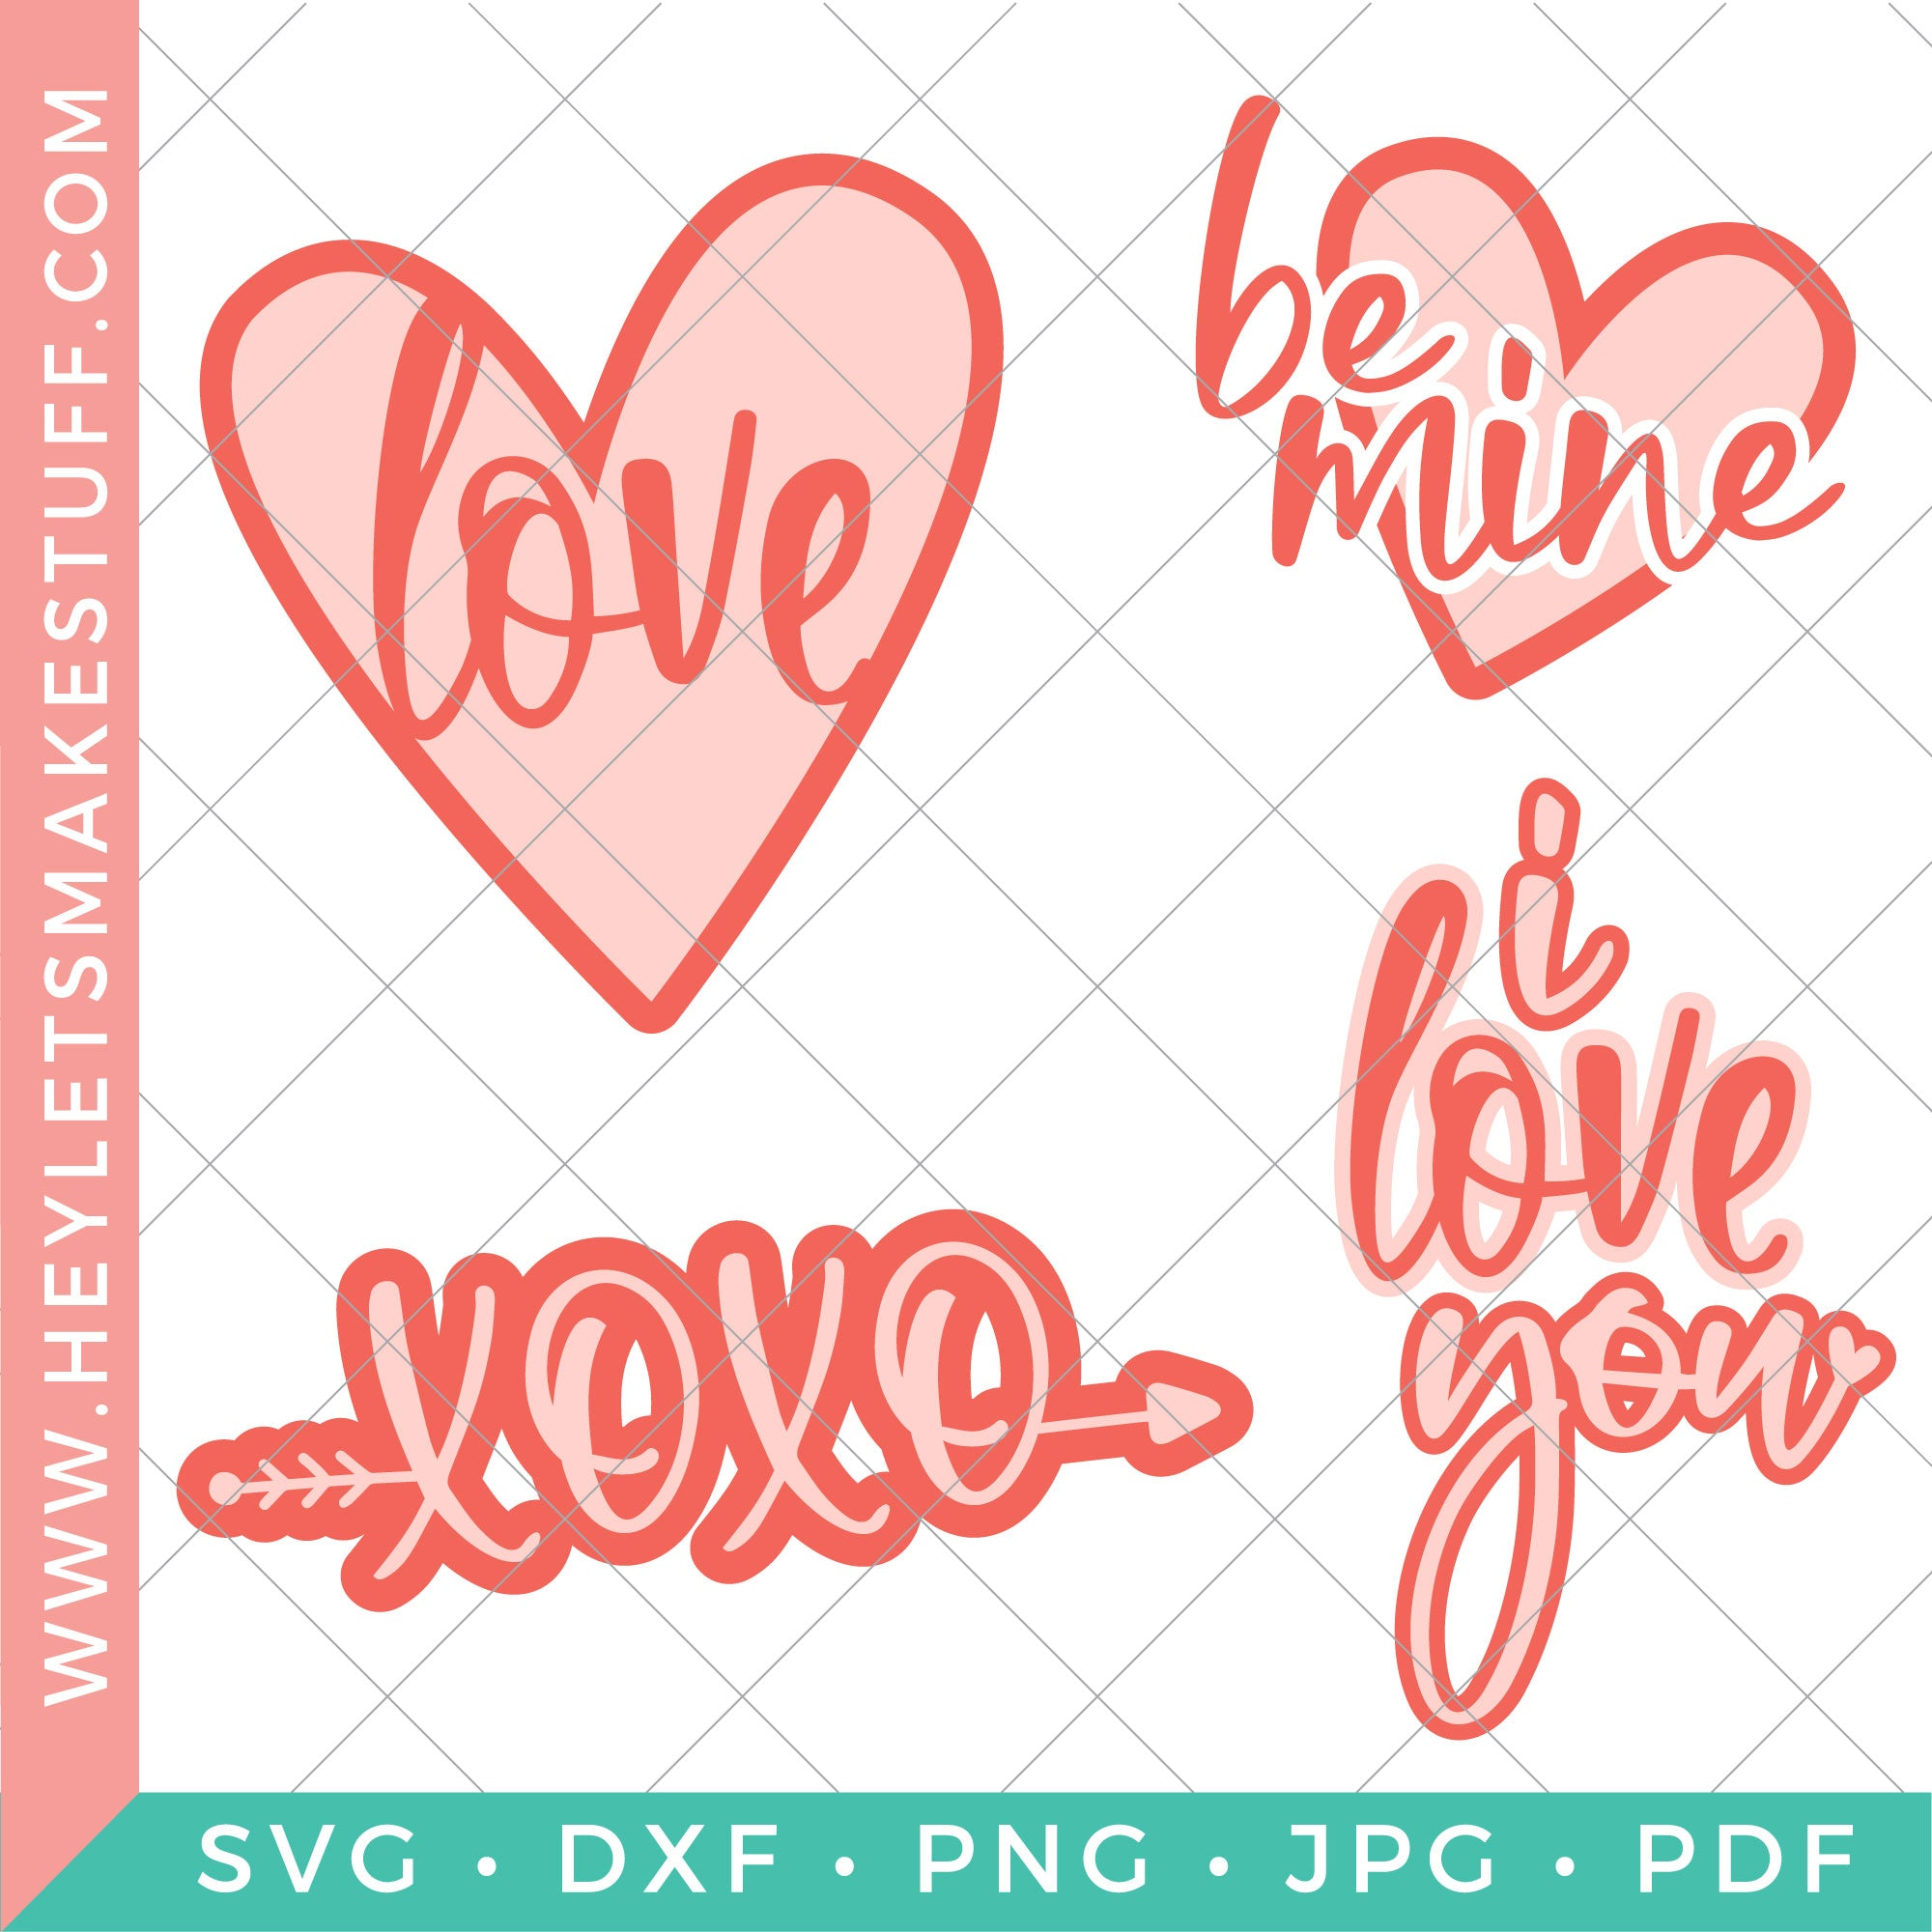 Love Svg Files To Make Gifts For Everyone Hey Lets Make Stuff